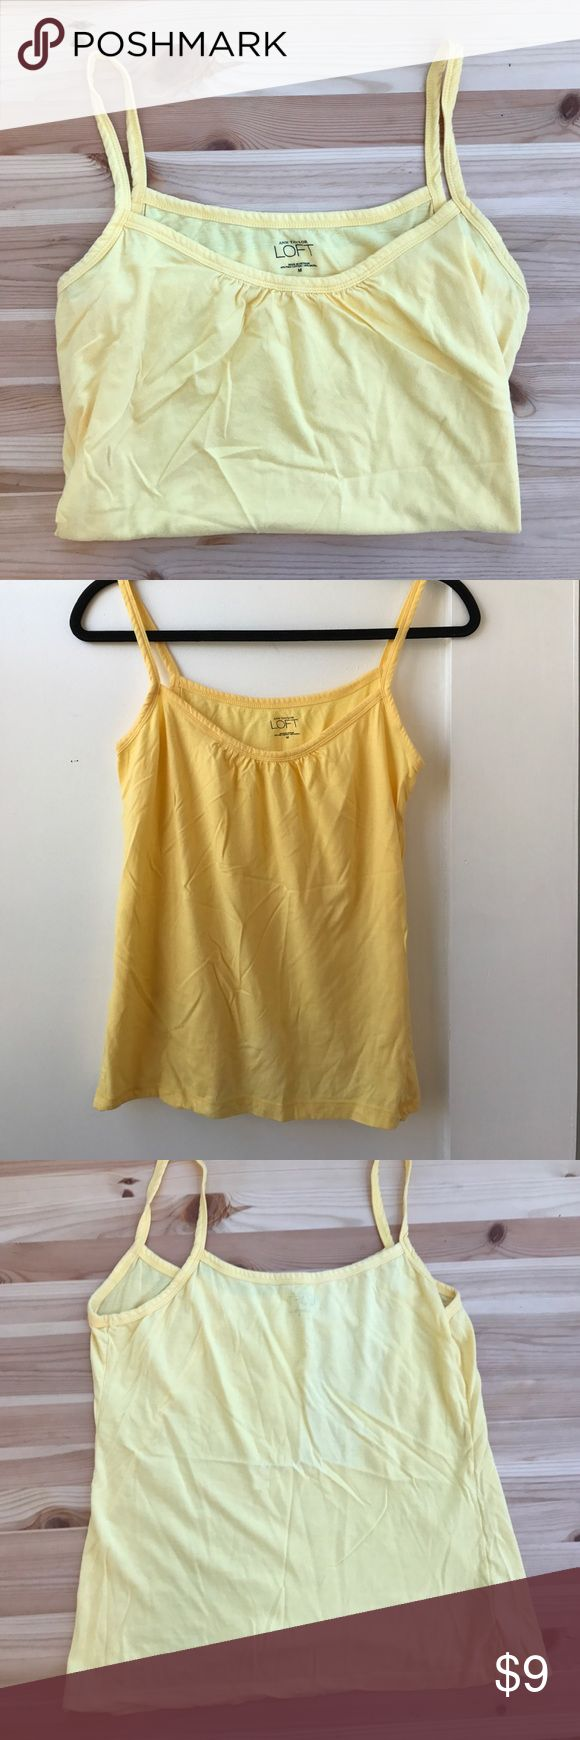 Ann Taylor LOFT yellow tank top LOFT by Ann Taylor yellow tank top. Size medium. LOFT Tops Tank Tops